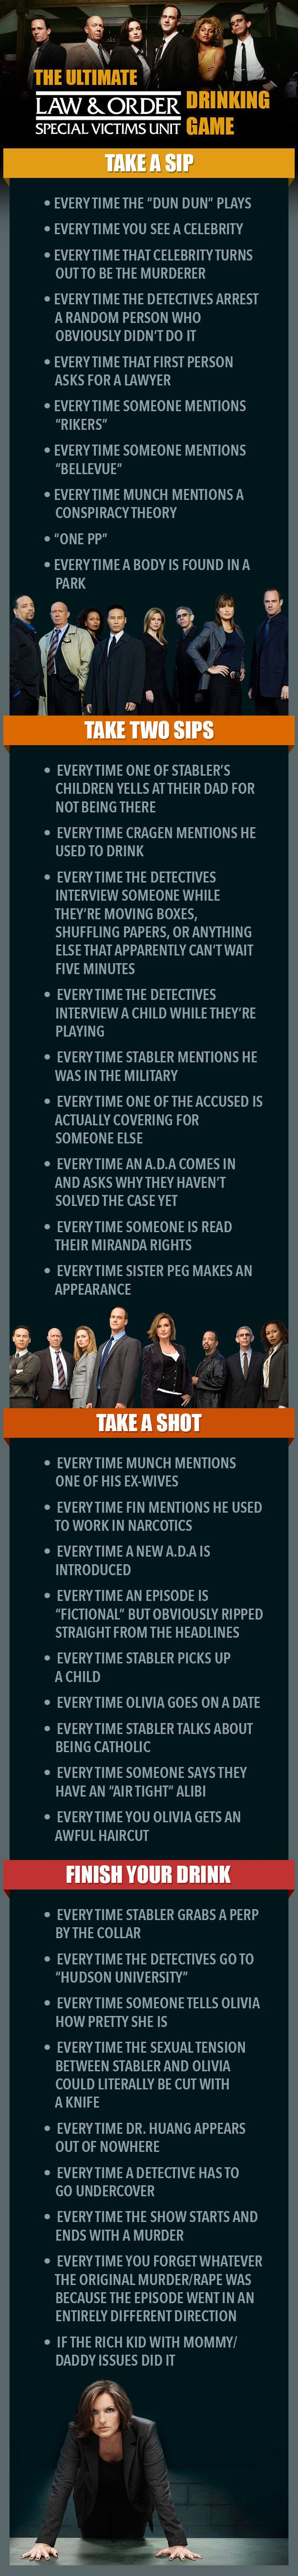 "The Ultimate ""Law & Order: SVU"" Drinking Game. Say goodbye to your liver."